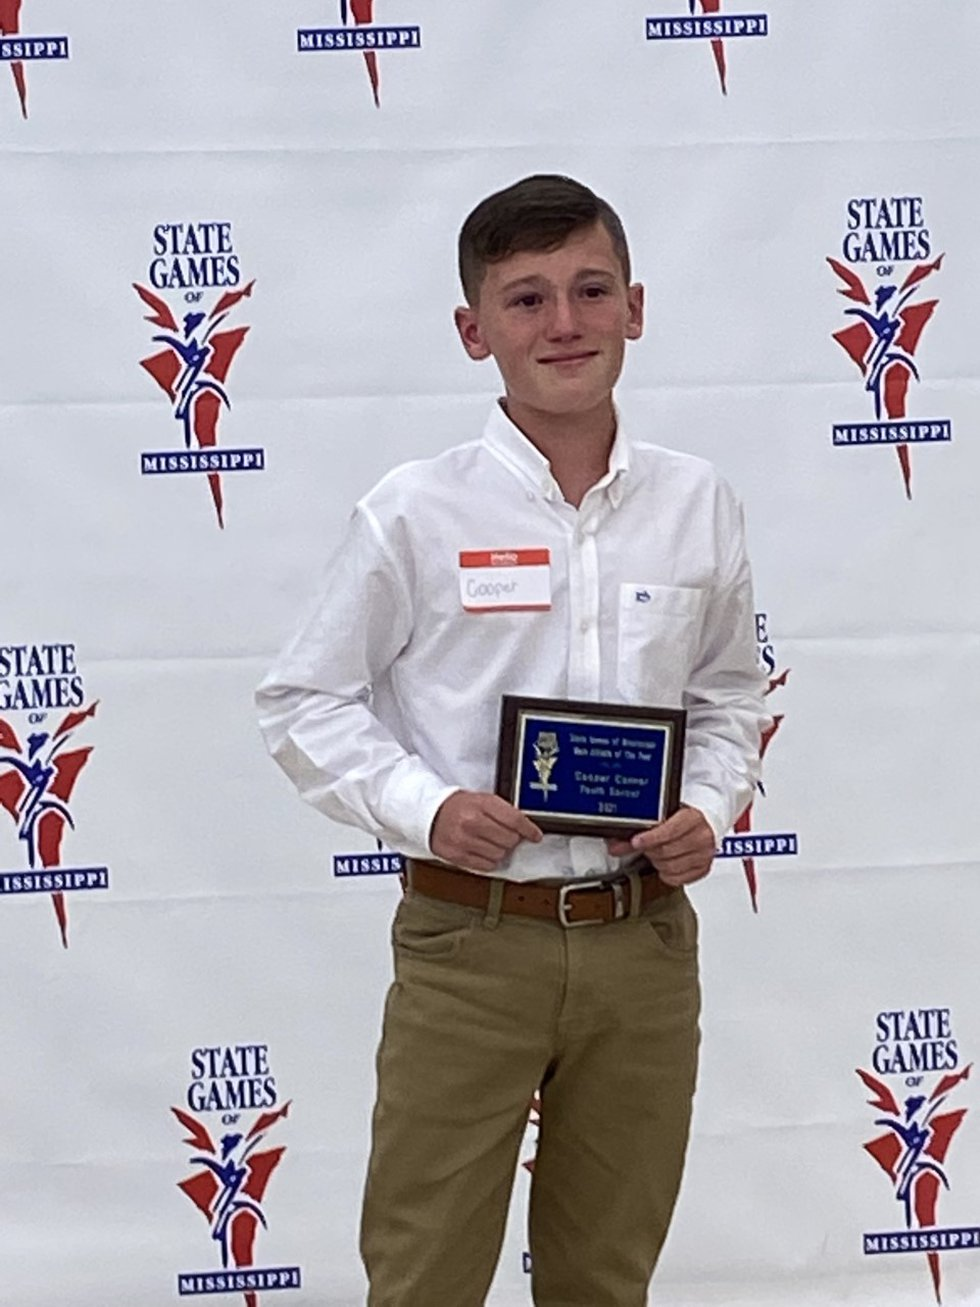 12-year-old State Games soccer player has been awarded with the honors of being the 2021 State...